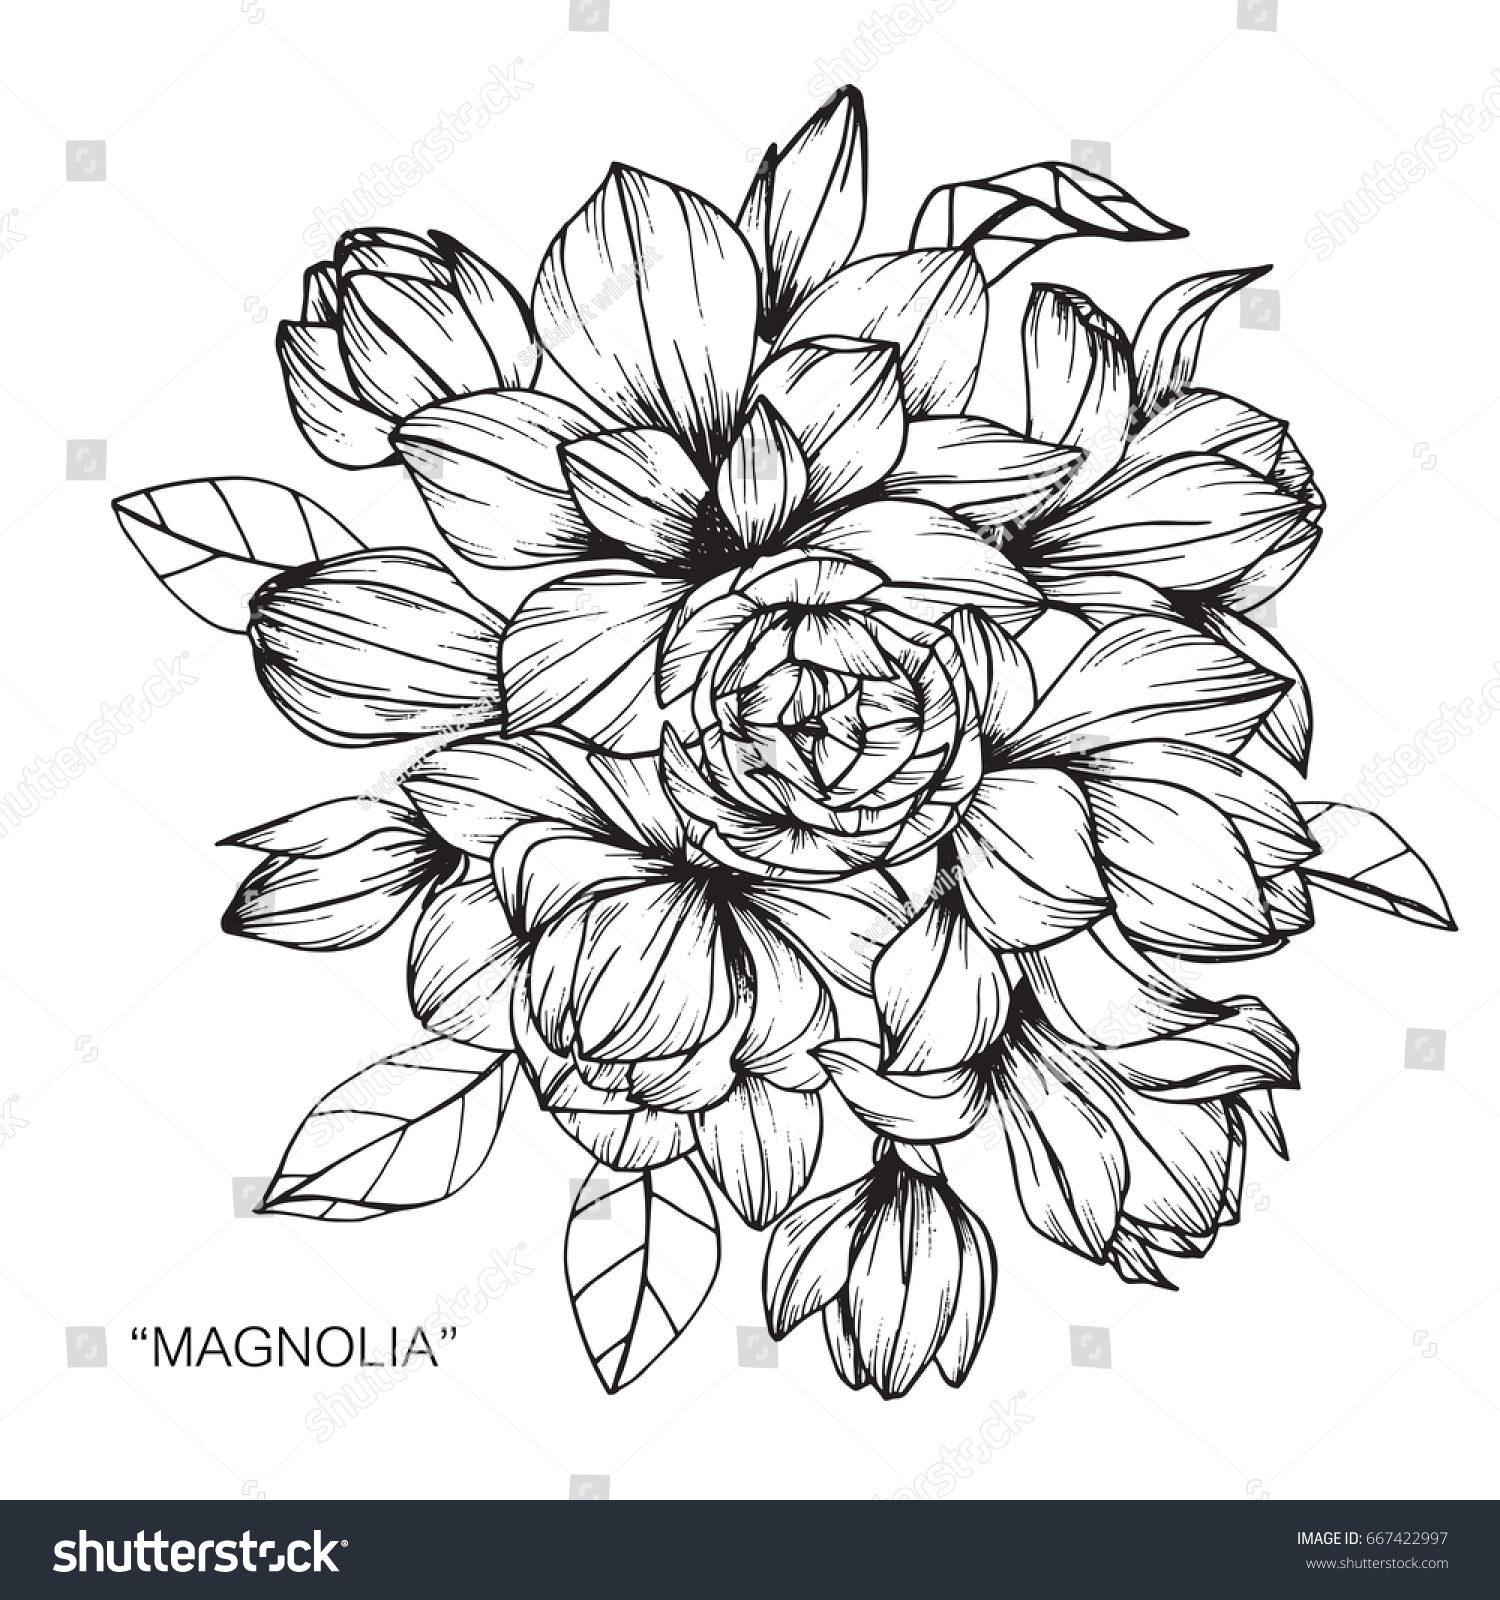 Bouquet Magnolia Flowers Drawing Sketch Lineart Stock Vector